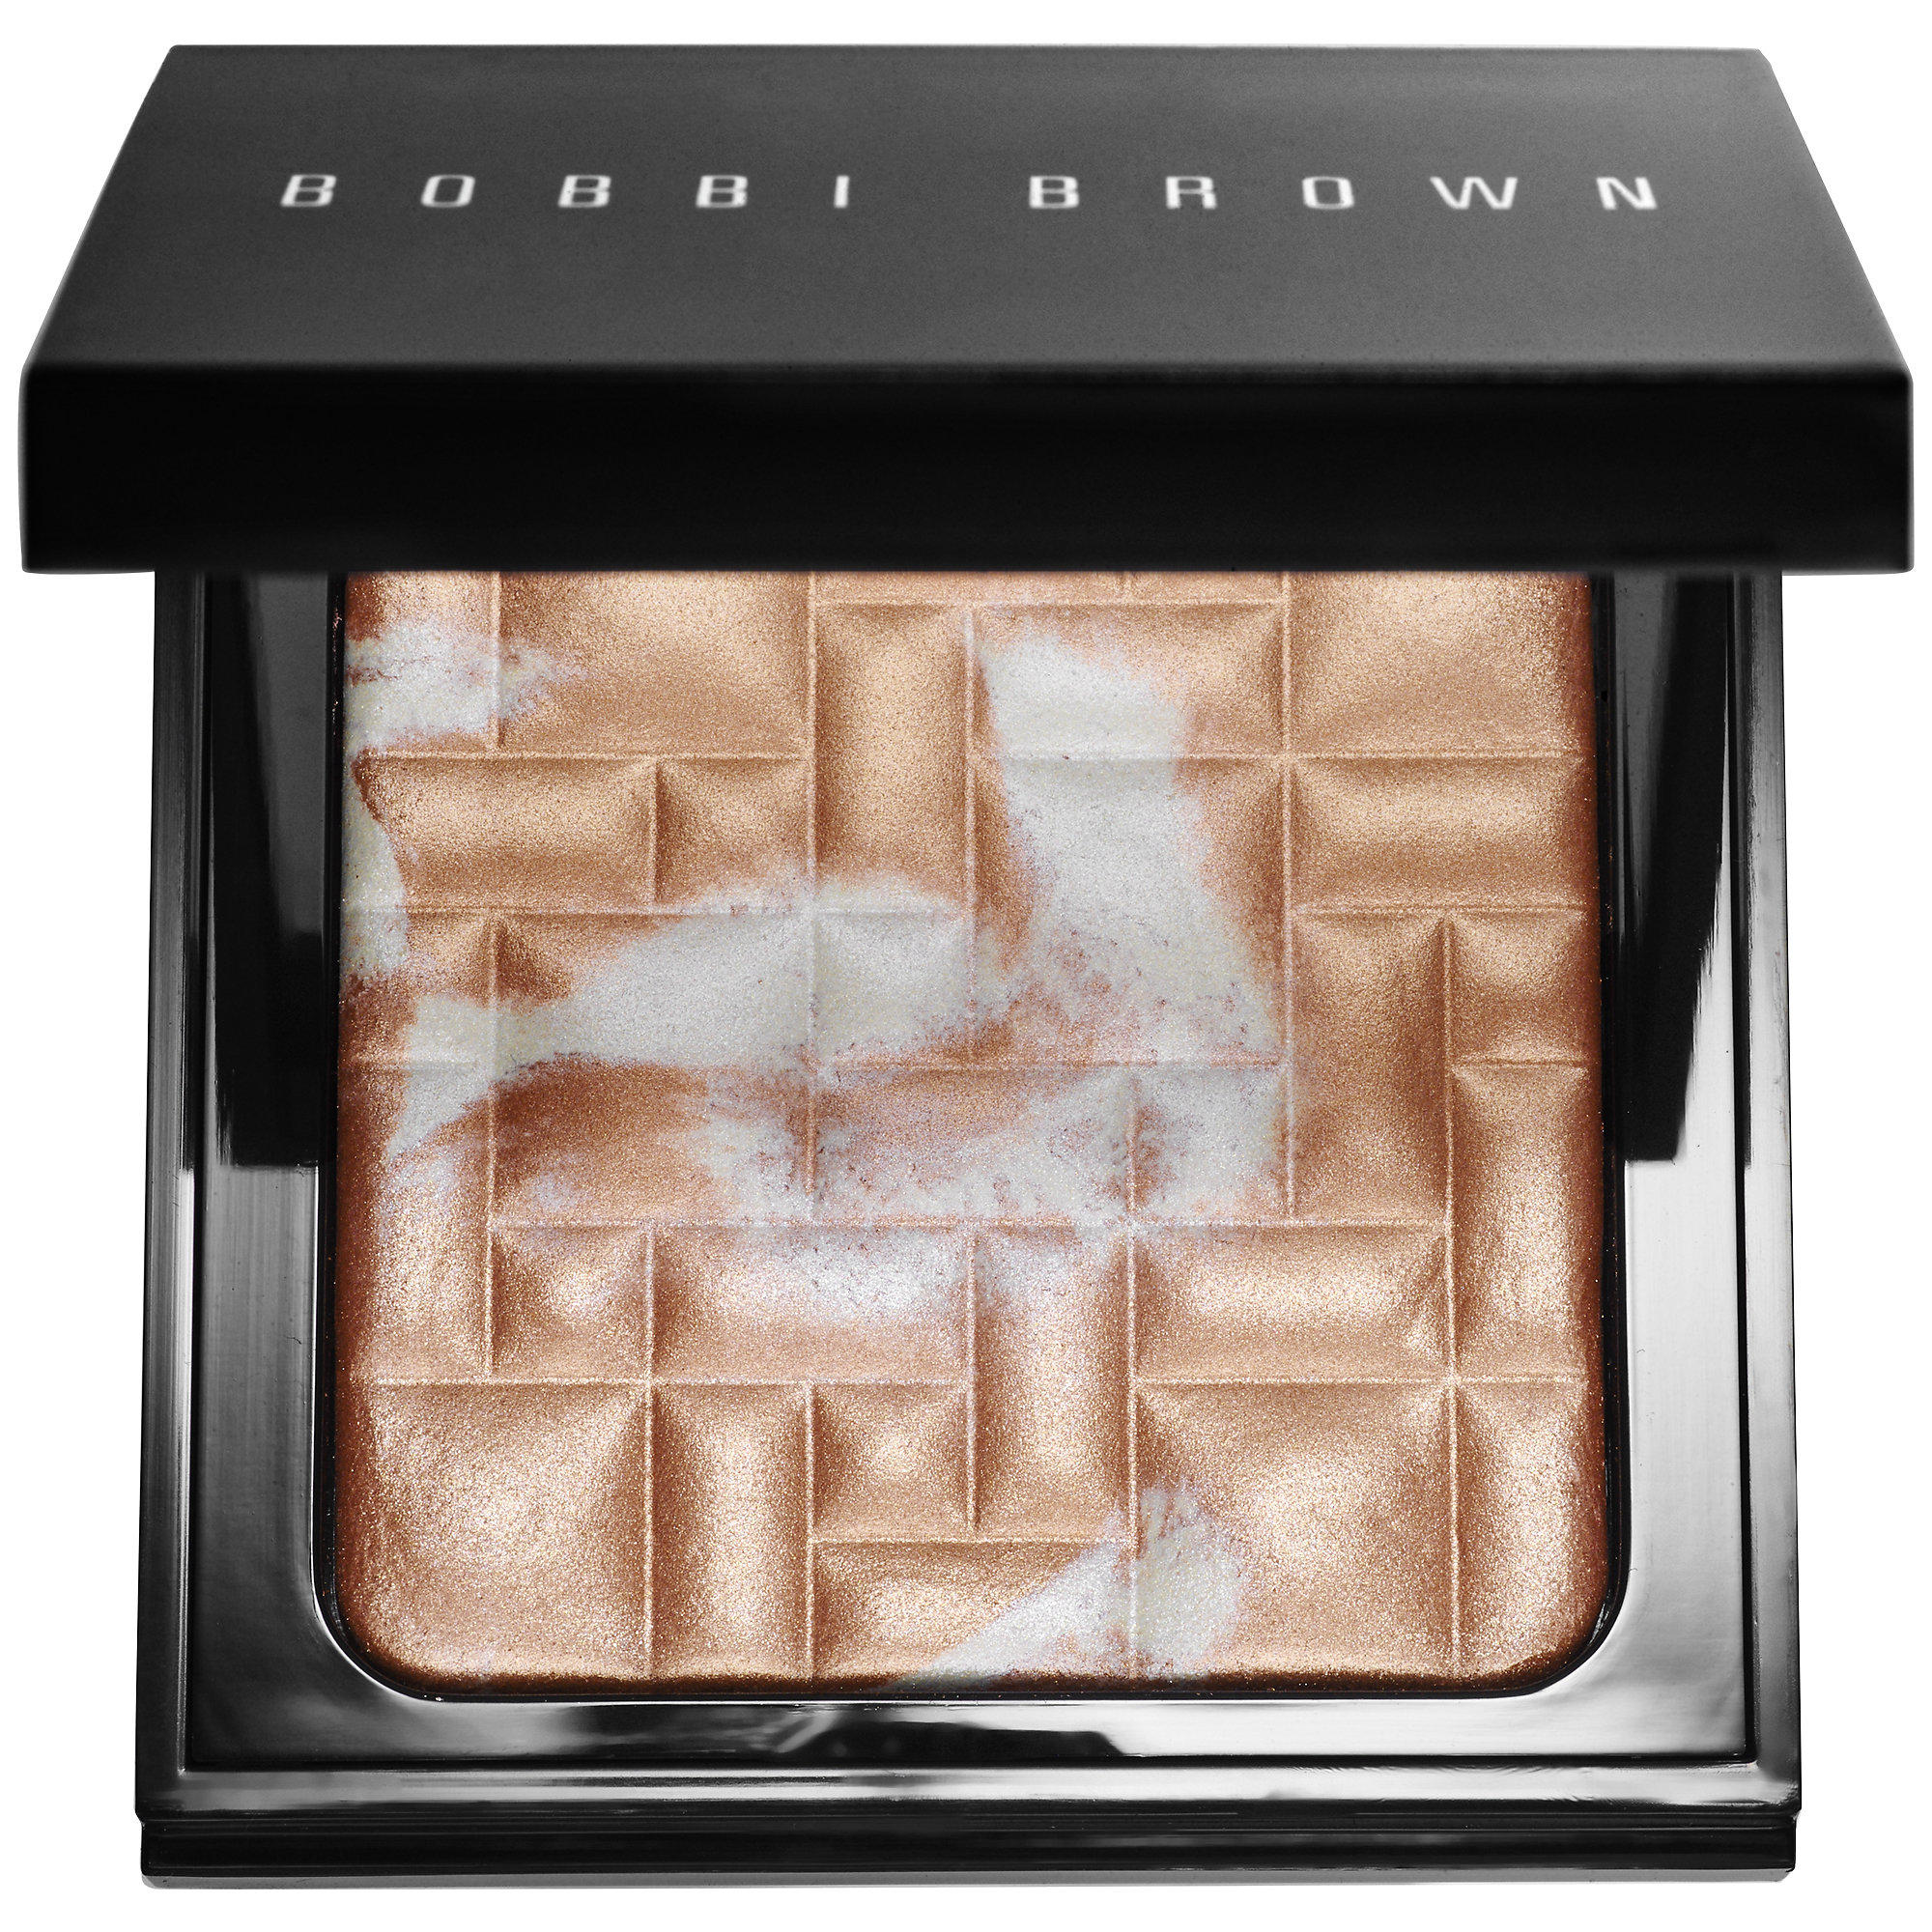 Bobbi Brown relaunched Highlight Powder